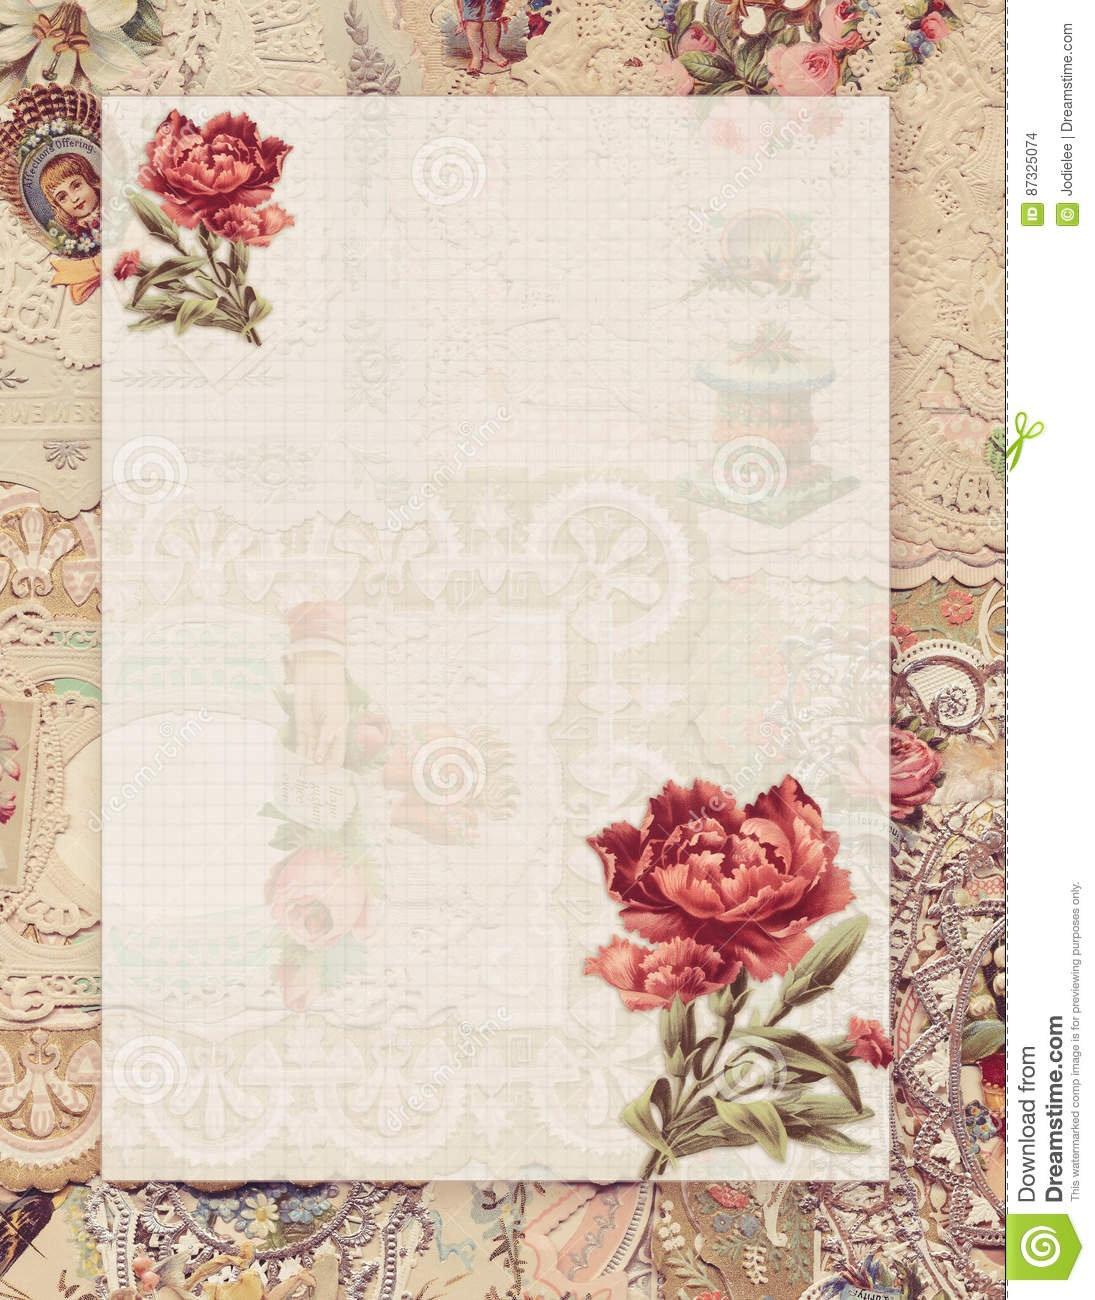 Printable Vintage Shabby Chic Style Floral Stationary On Antique - Free Printable Vintage Stationary